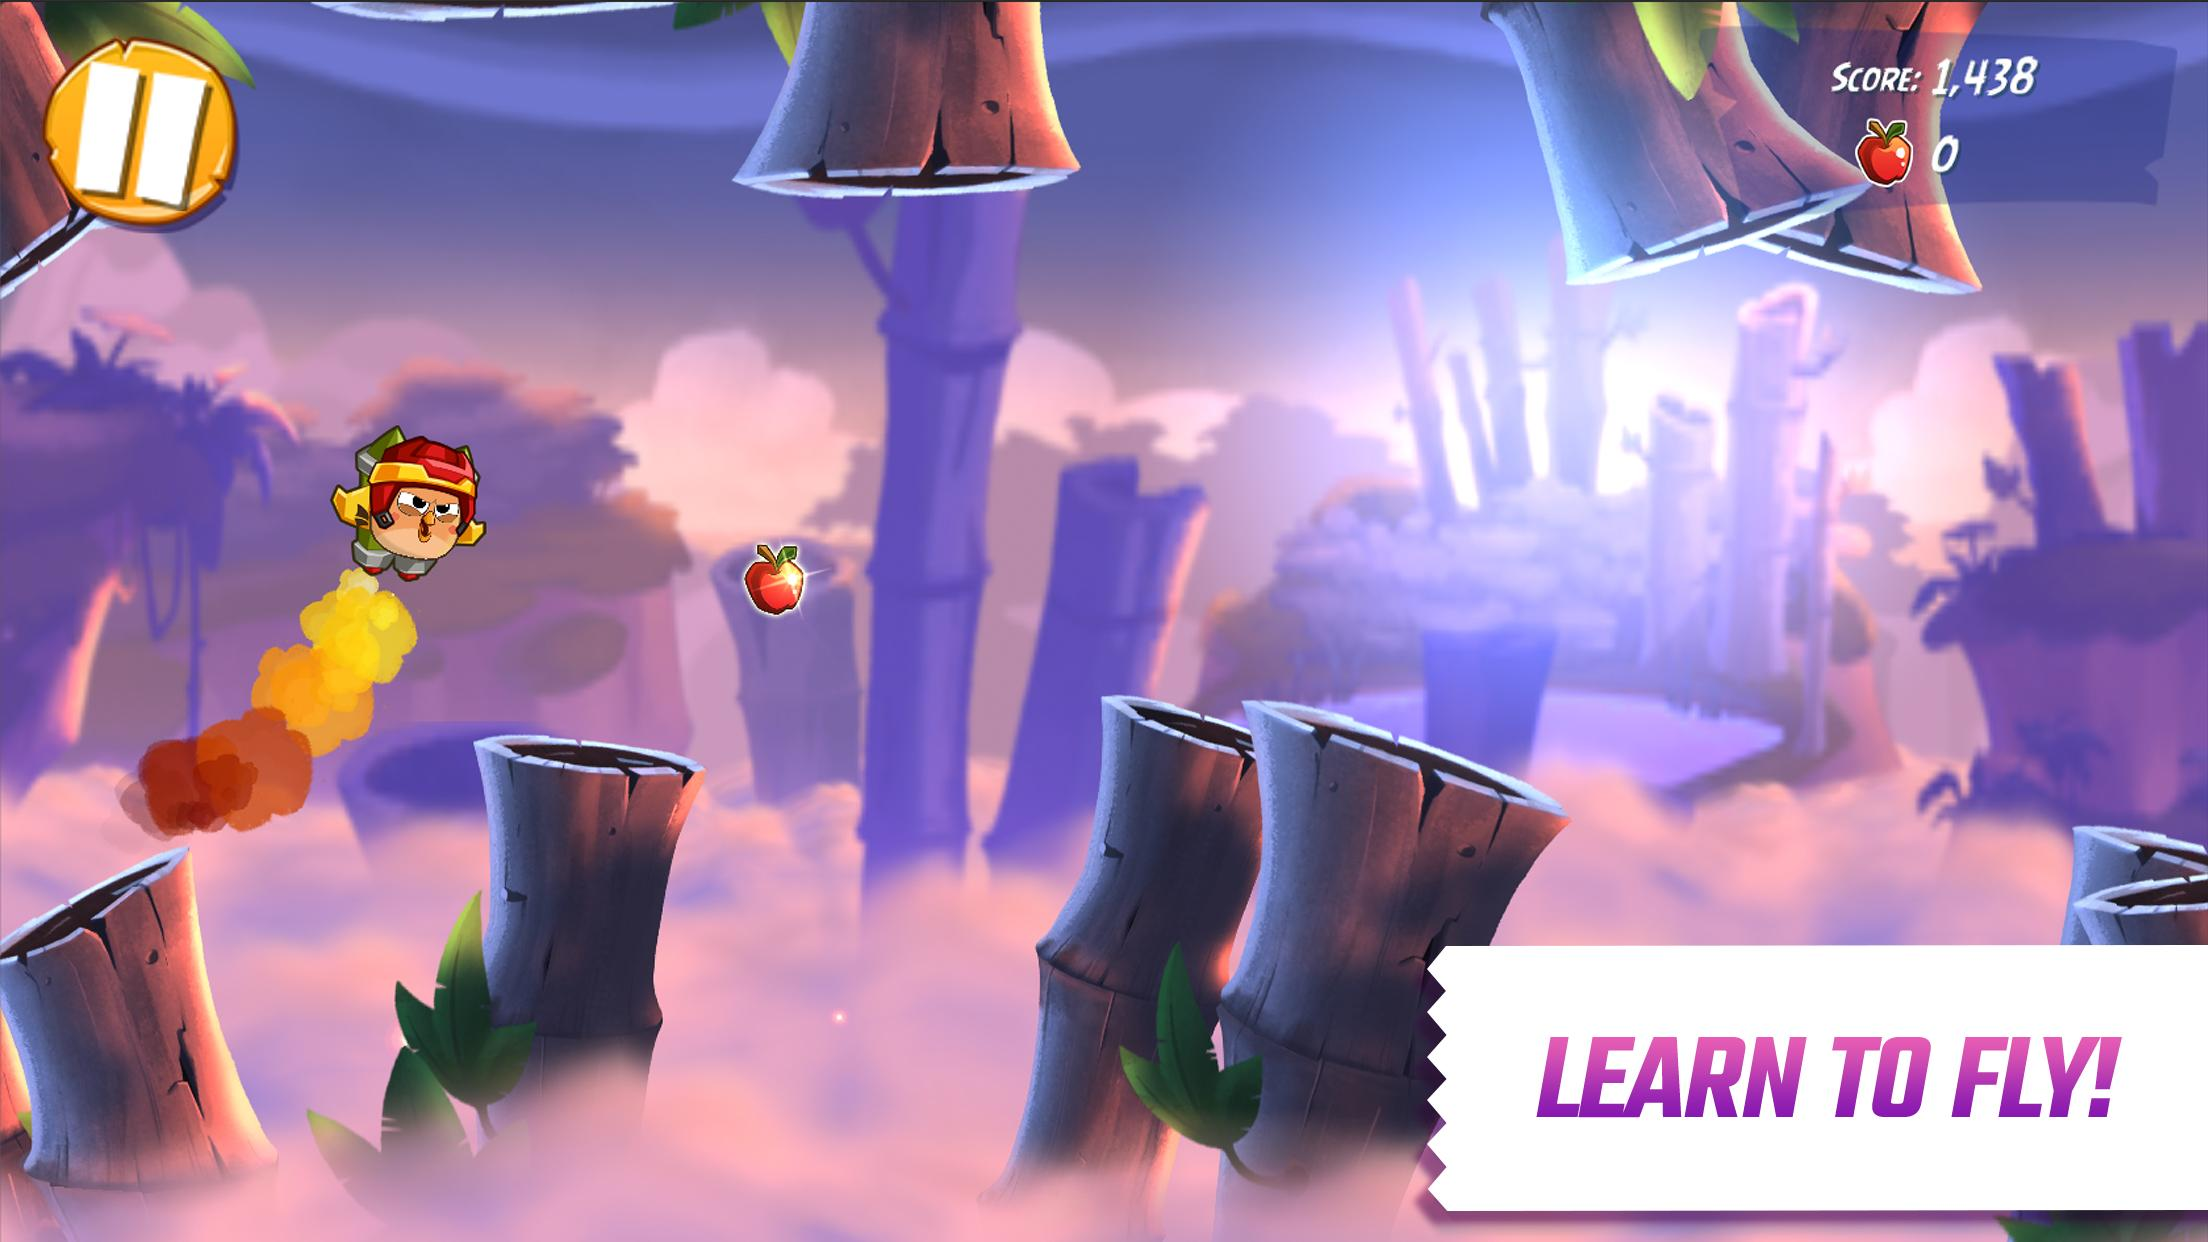 Angry Birds 2 Hack 2018 angry birds 2 apk download, defeat piggy boss and rescue